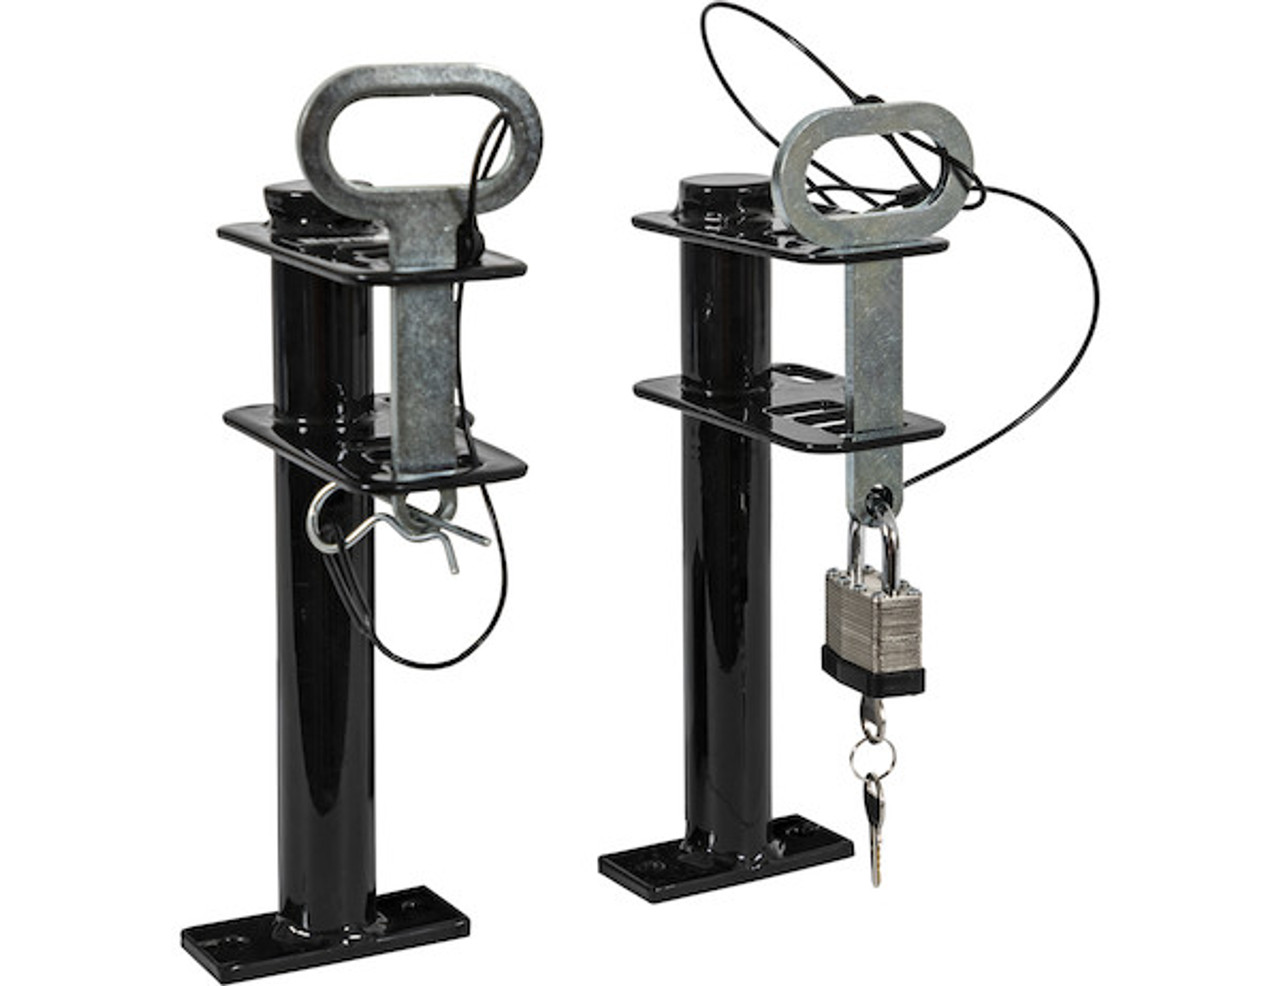 Buyers LT16 Lockable Trimmer Rack Carrier Holder for 1 Trimmer for Trailers and Trucks Picture # 2